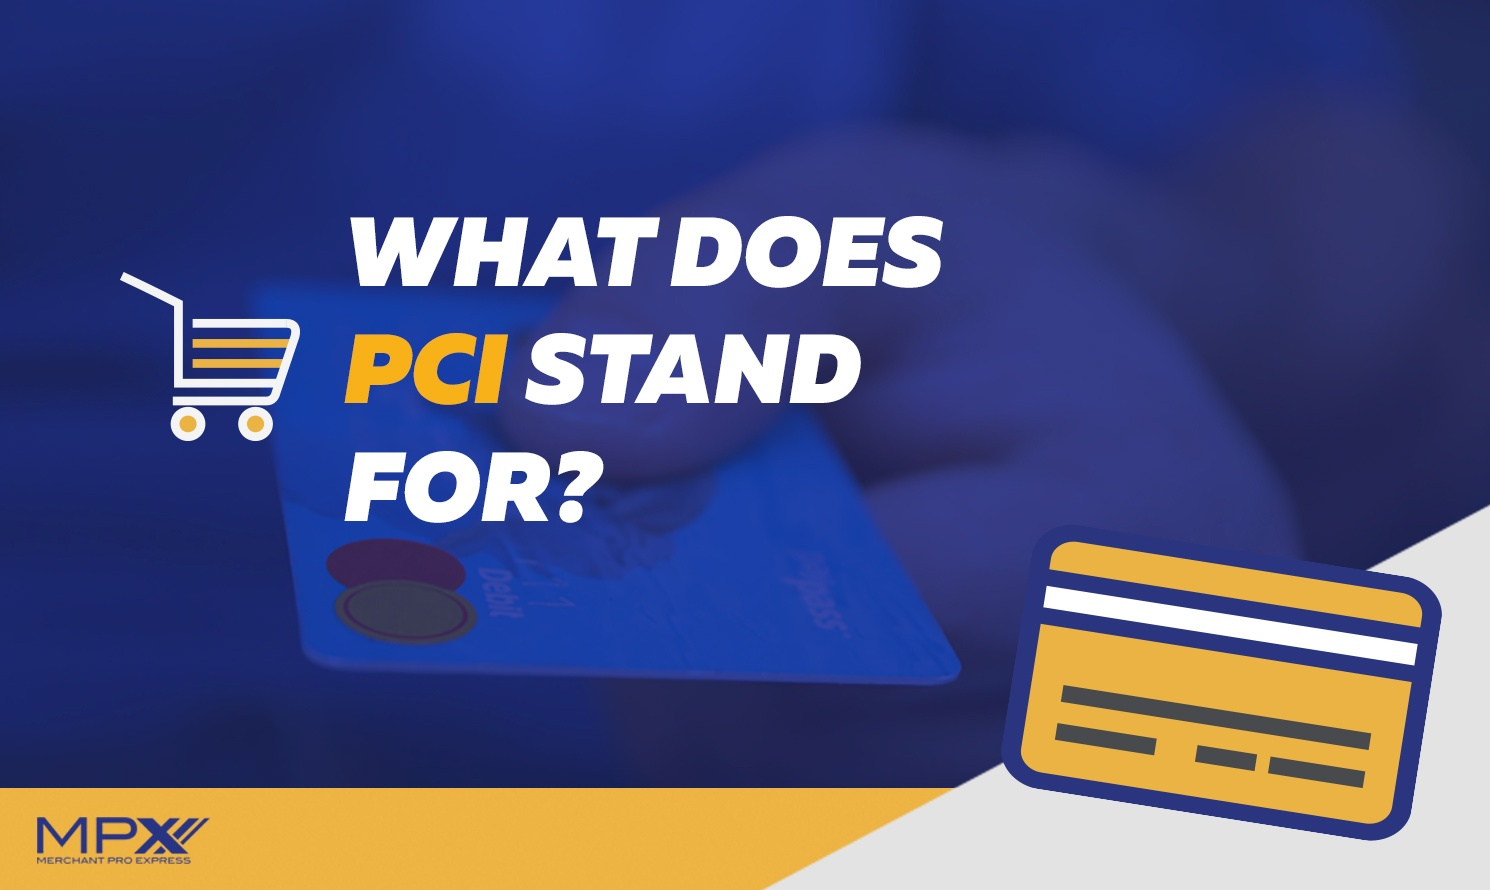 What-Does-PCI-Stand+For-.jpg